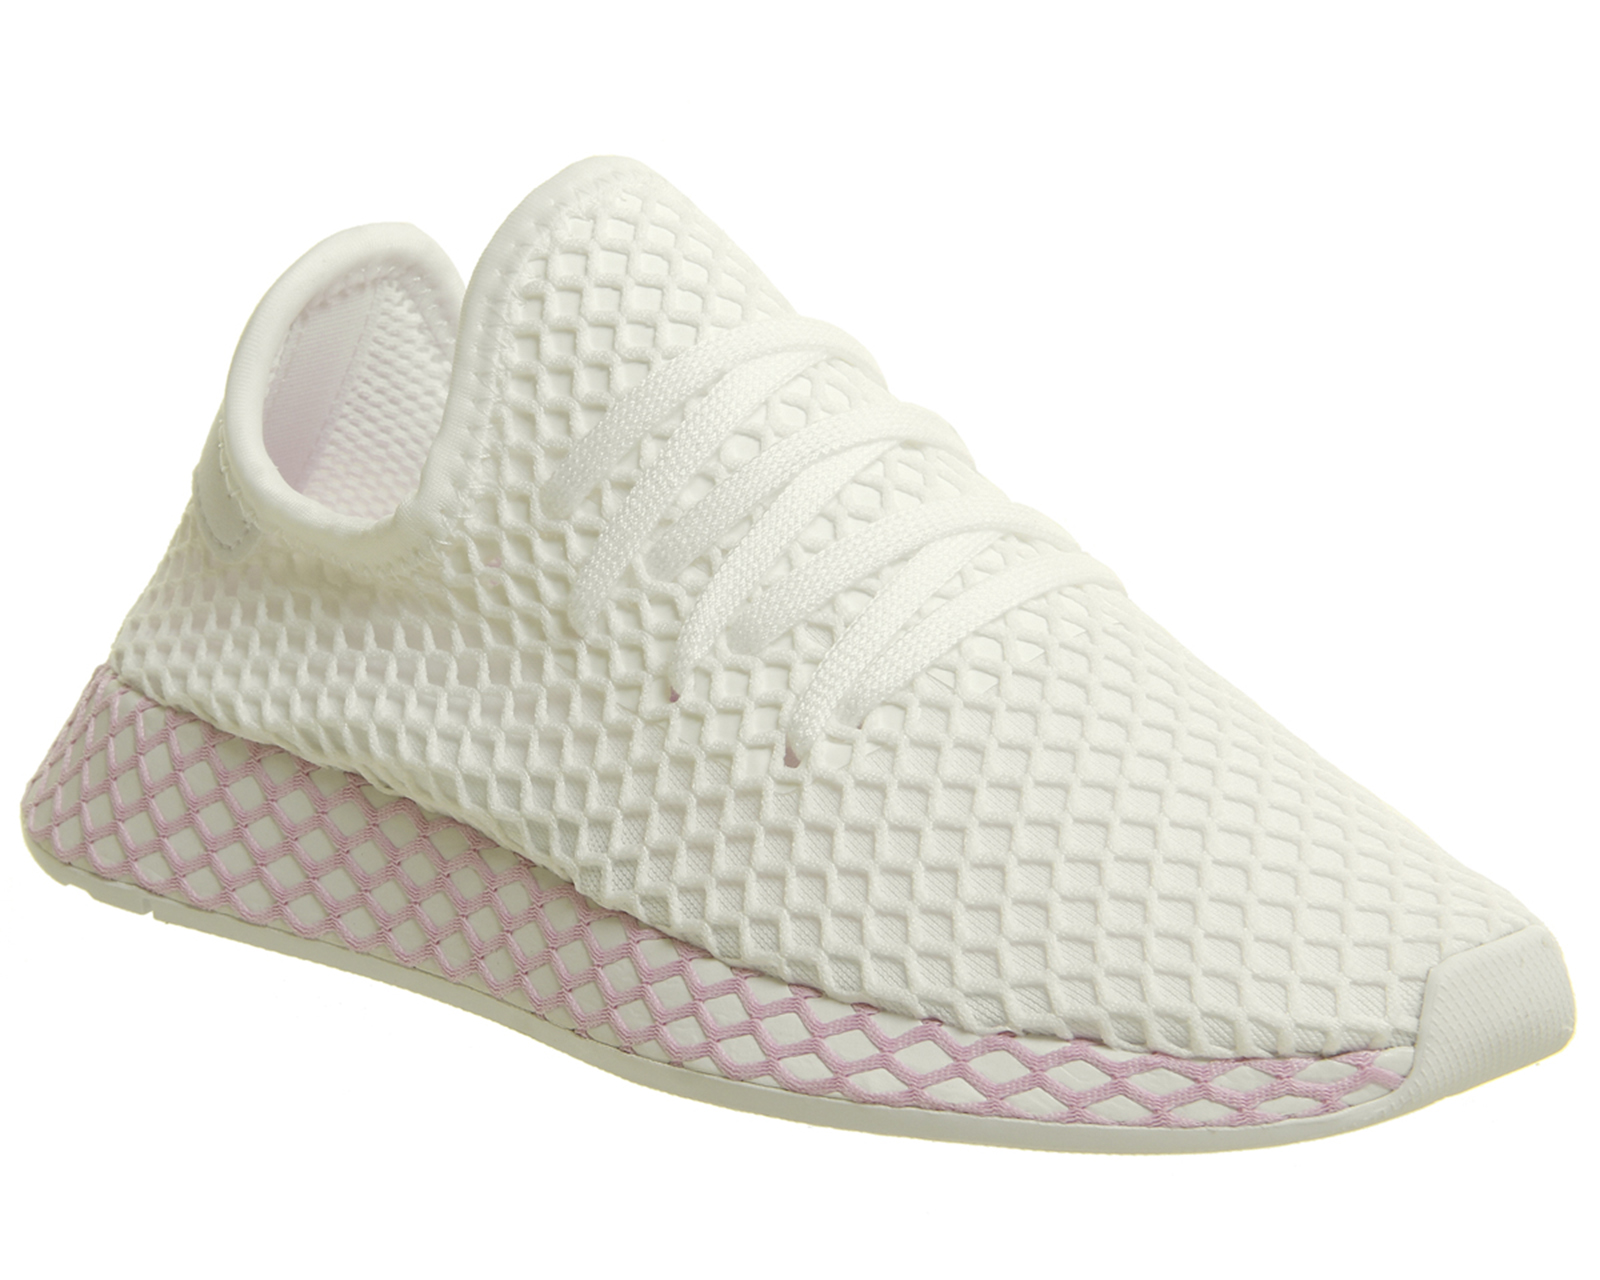 new product 75628 f6601 Sentinel Womens Adidas Deerupt Trainers WHITE CLEAR LILAC F Trainers Shoes